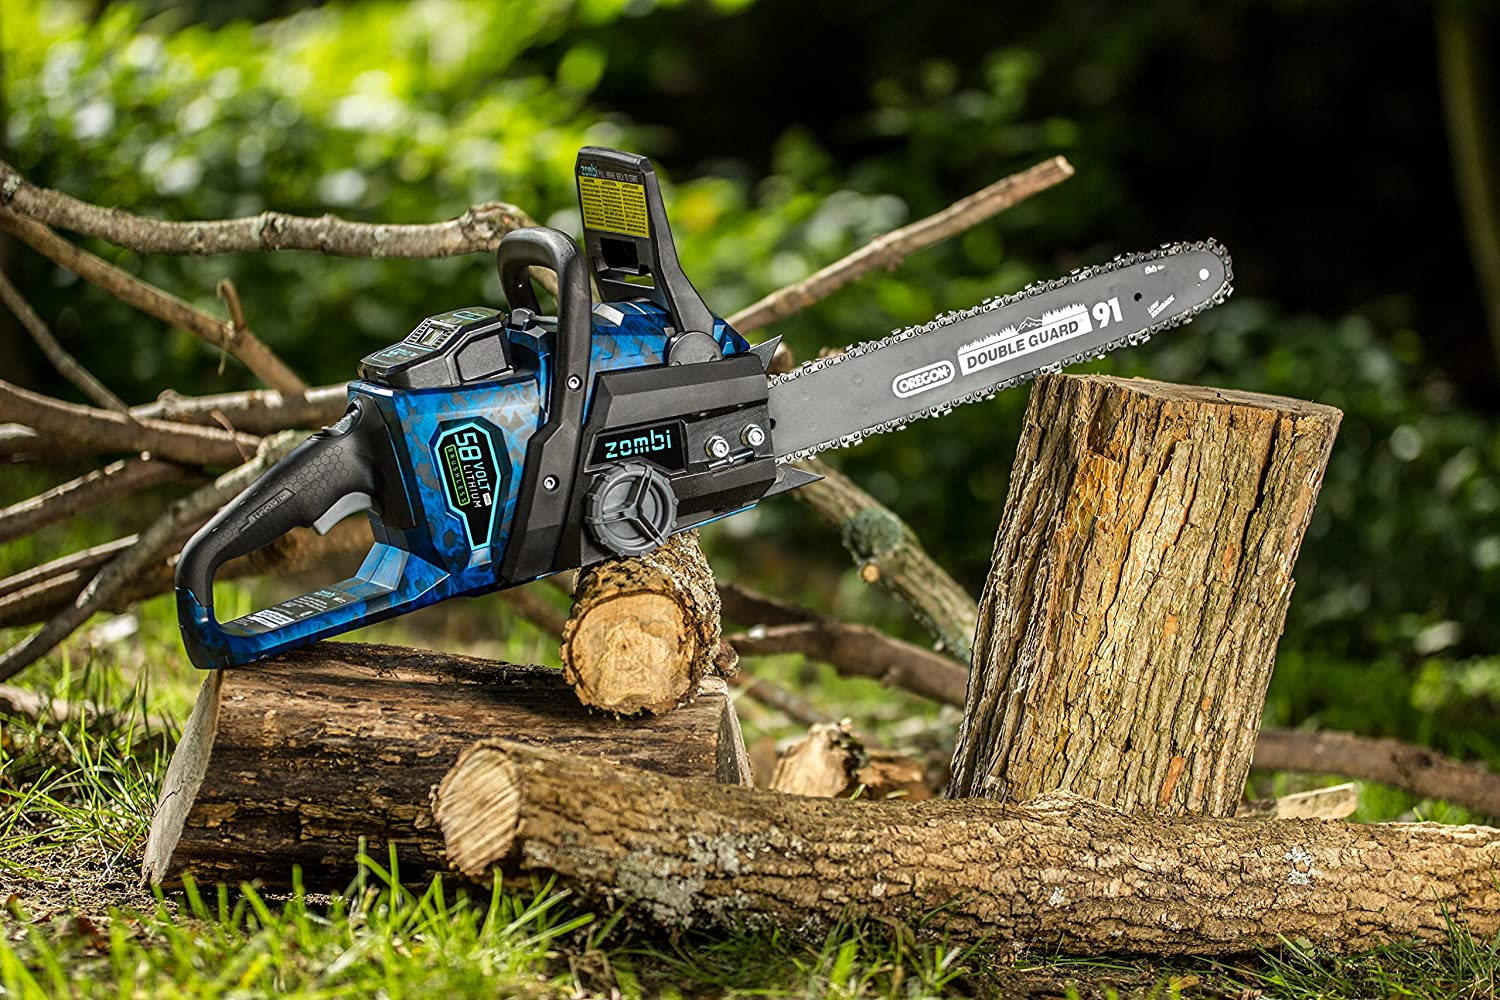 Zombi Power Tools ZCS5817 Chainsaws product image 2